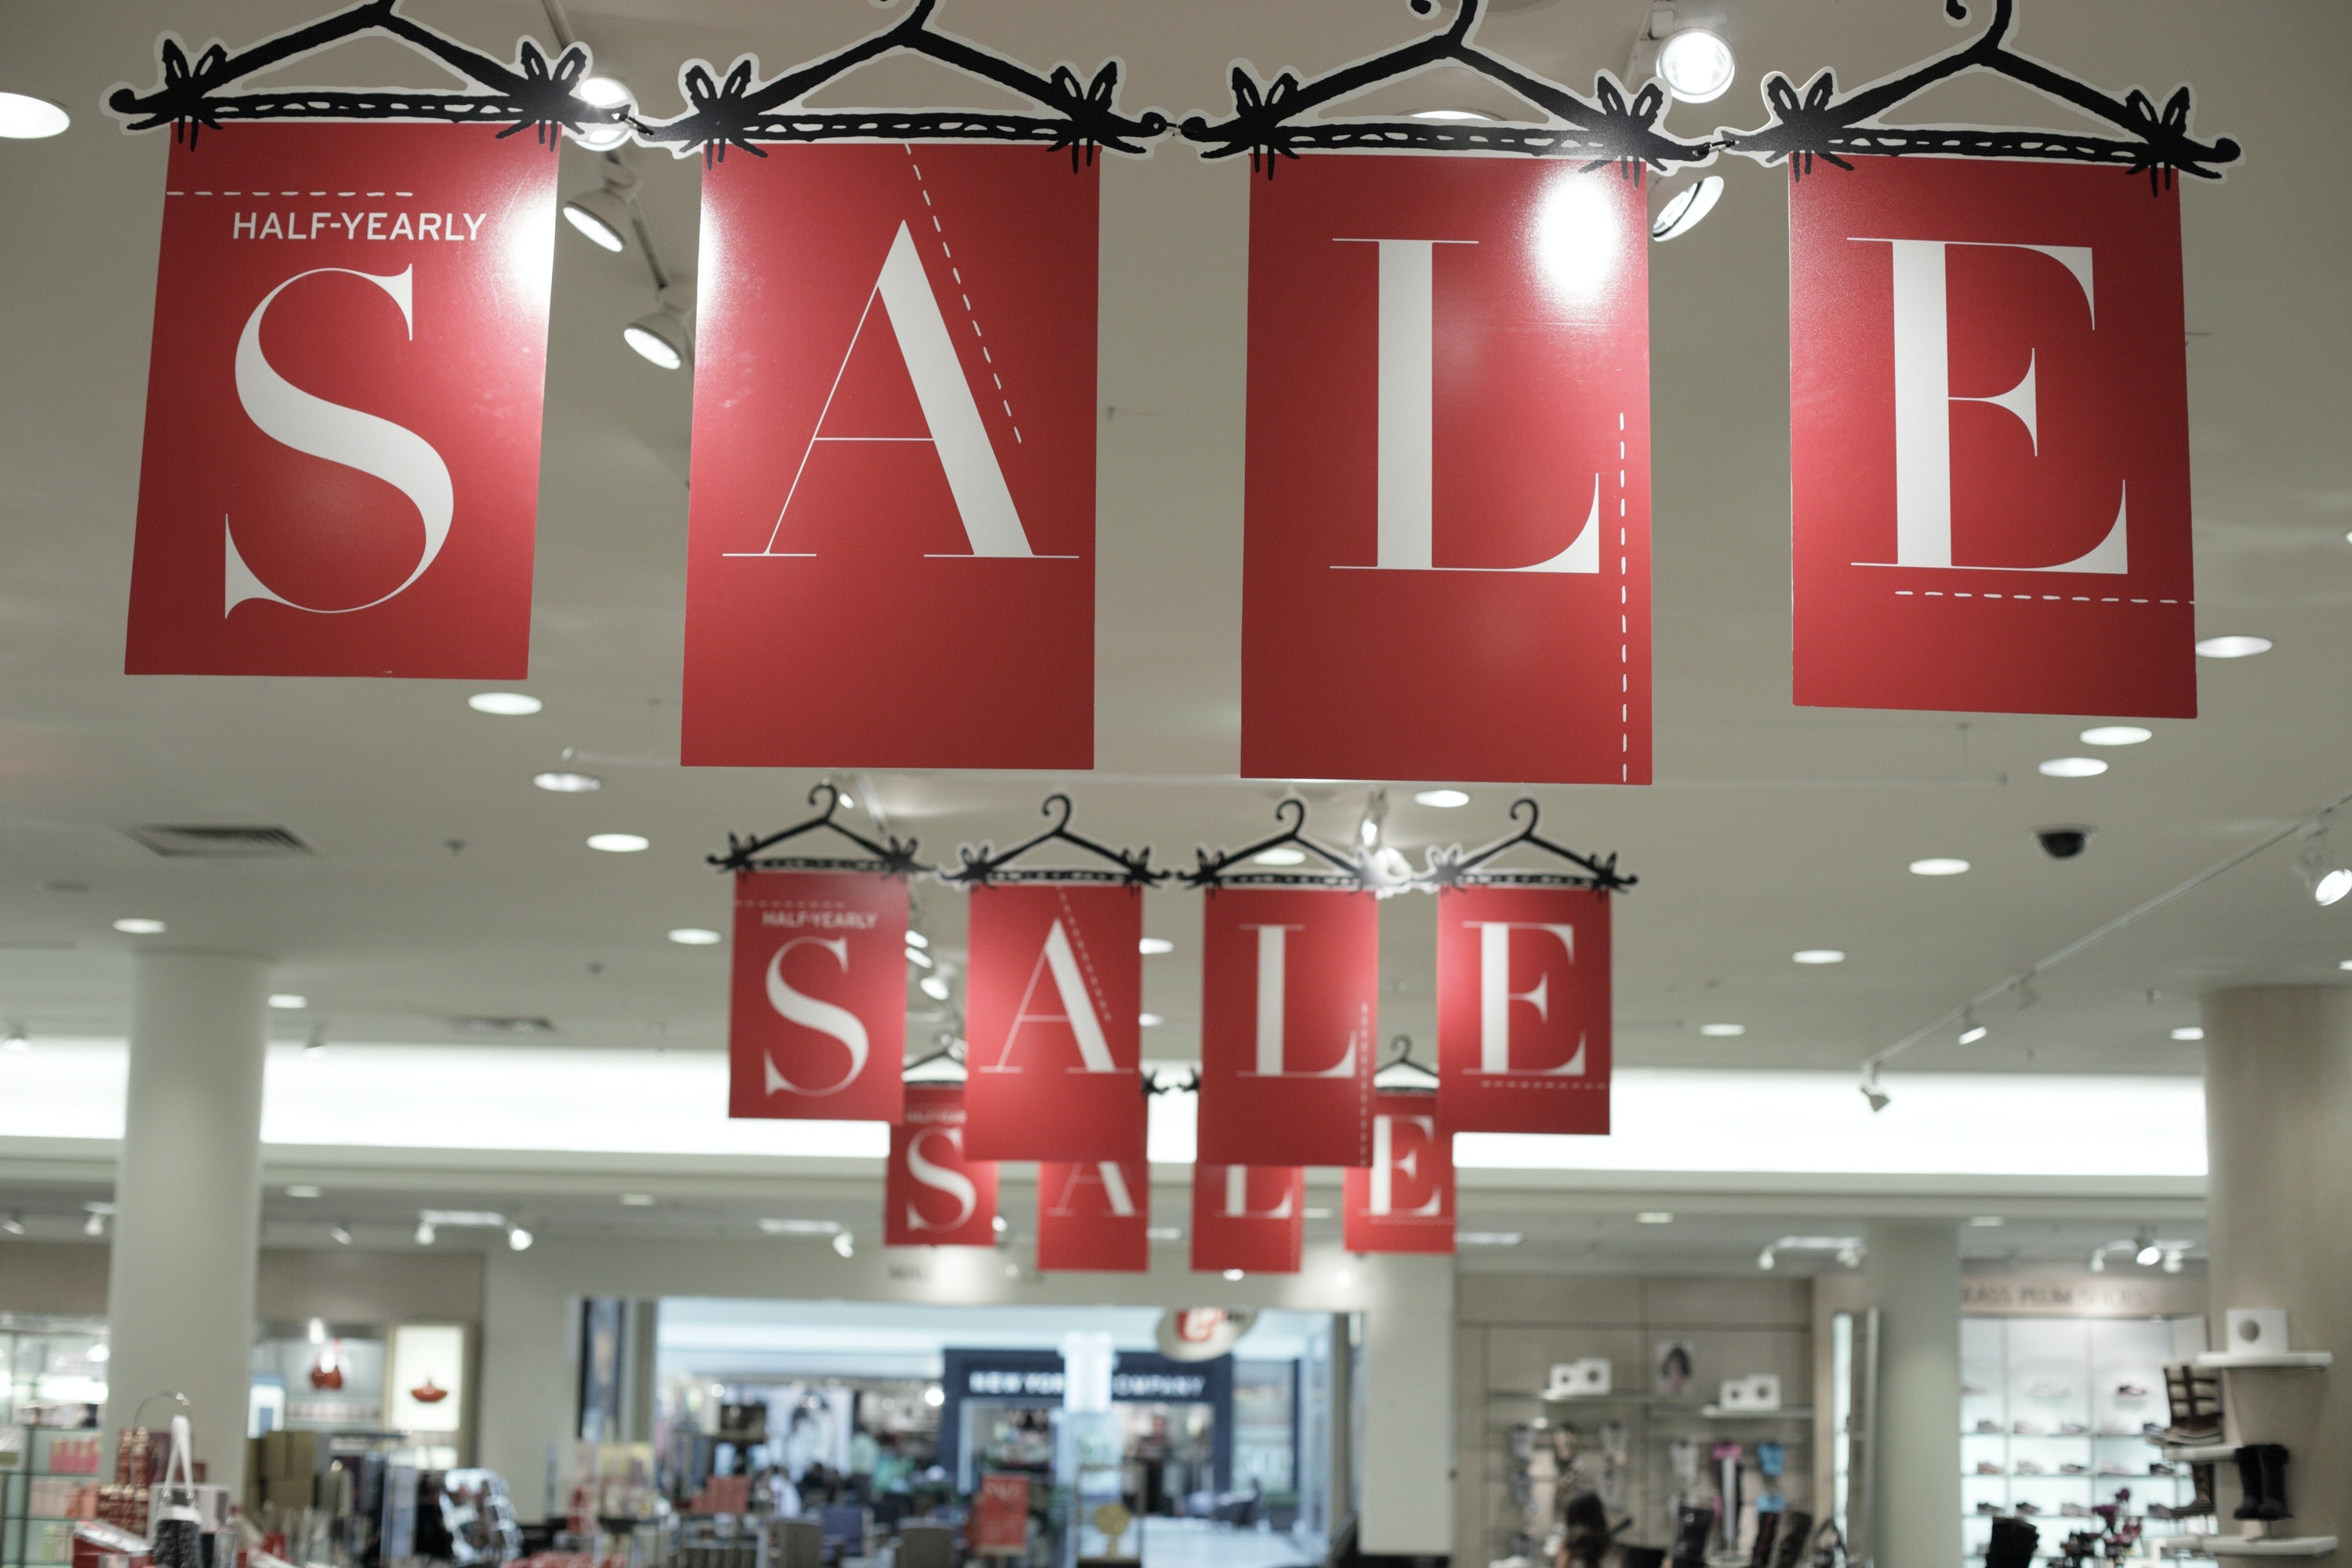 Holding the right kind of sales can also boost profits and get shoppers excited. Shutterstock